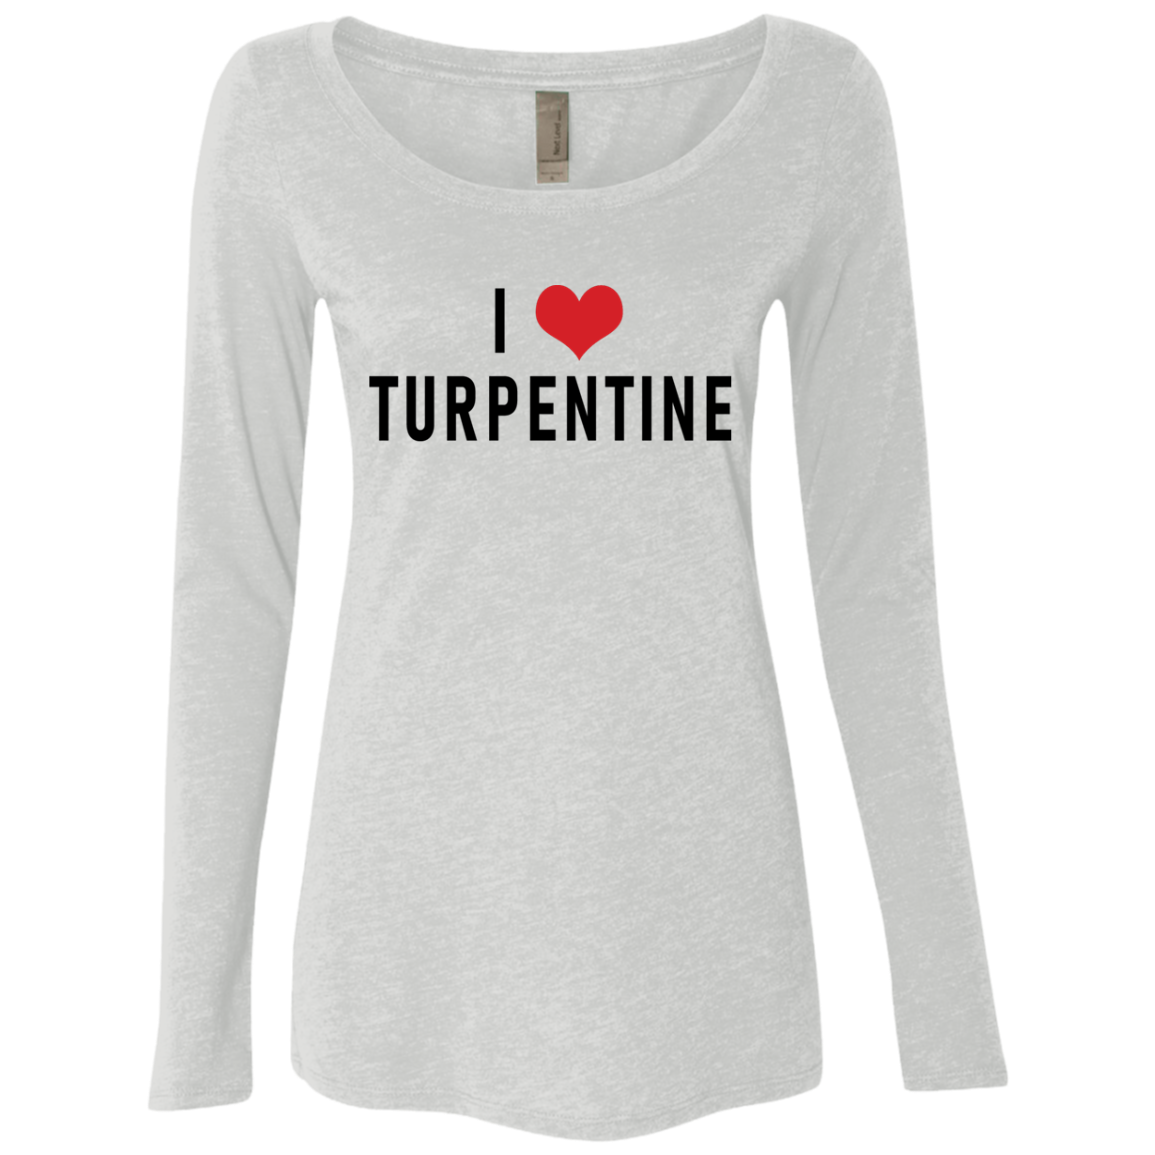 I Love Turpentine Women's Long Sleeve Tee